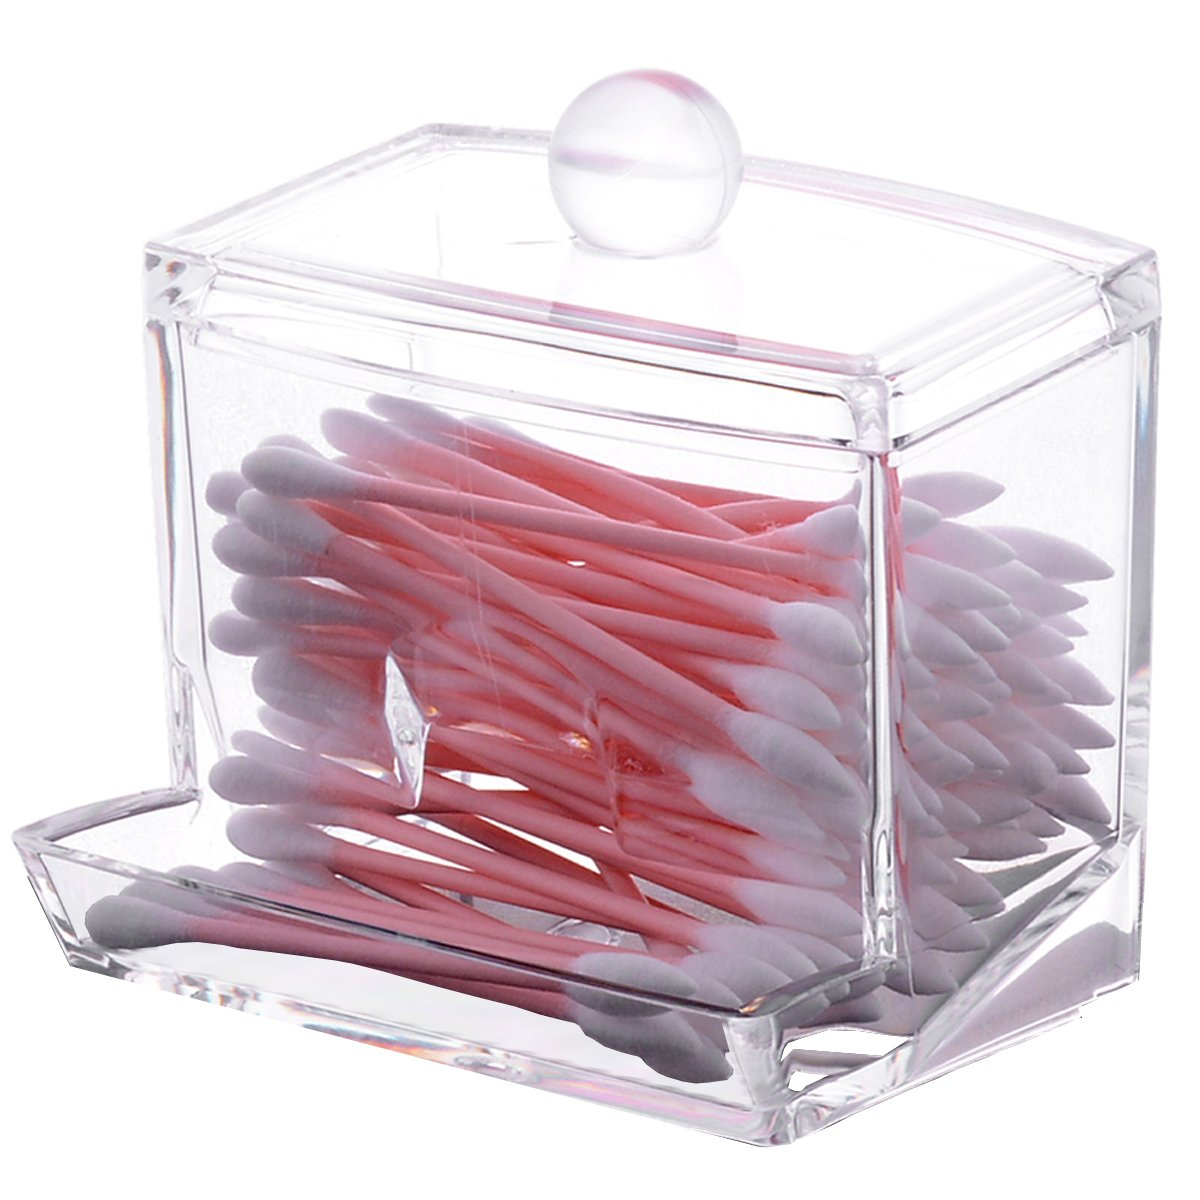 Sooyee Acrylic Cosmetic Q-tip Cotton Swabs Balls Buds Holder Makeup Storage Case Dispenser Organizer,Clear,pack of 1